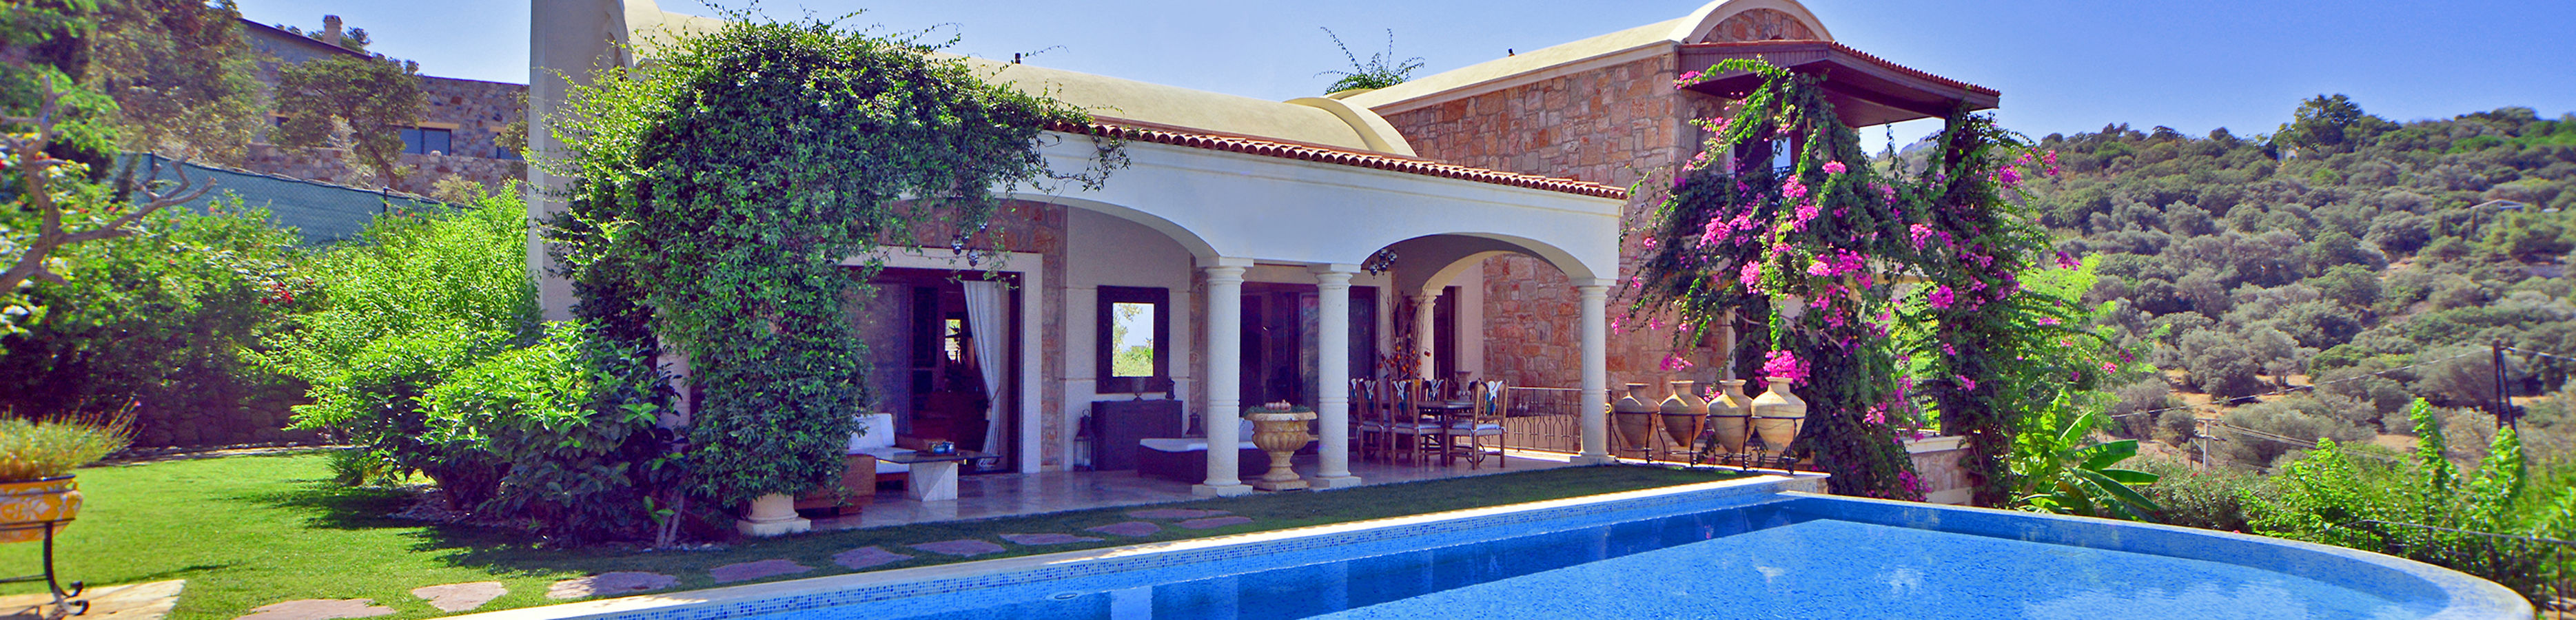 Luxury Yalıkavak villa exceptional privacy private garden private pool